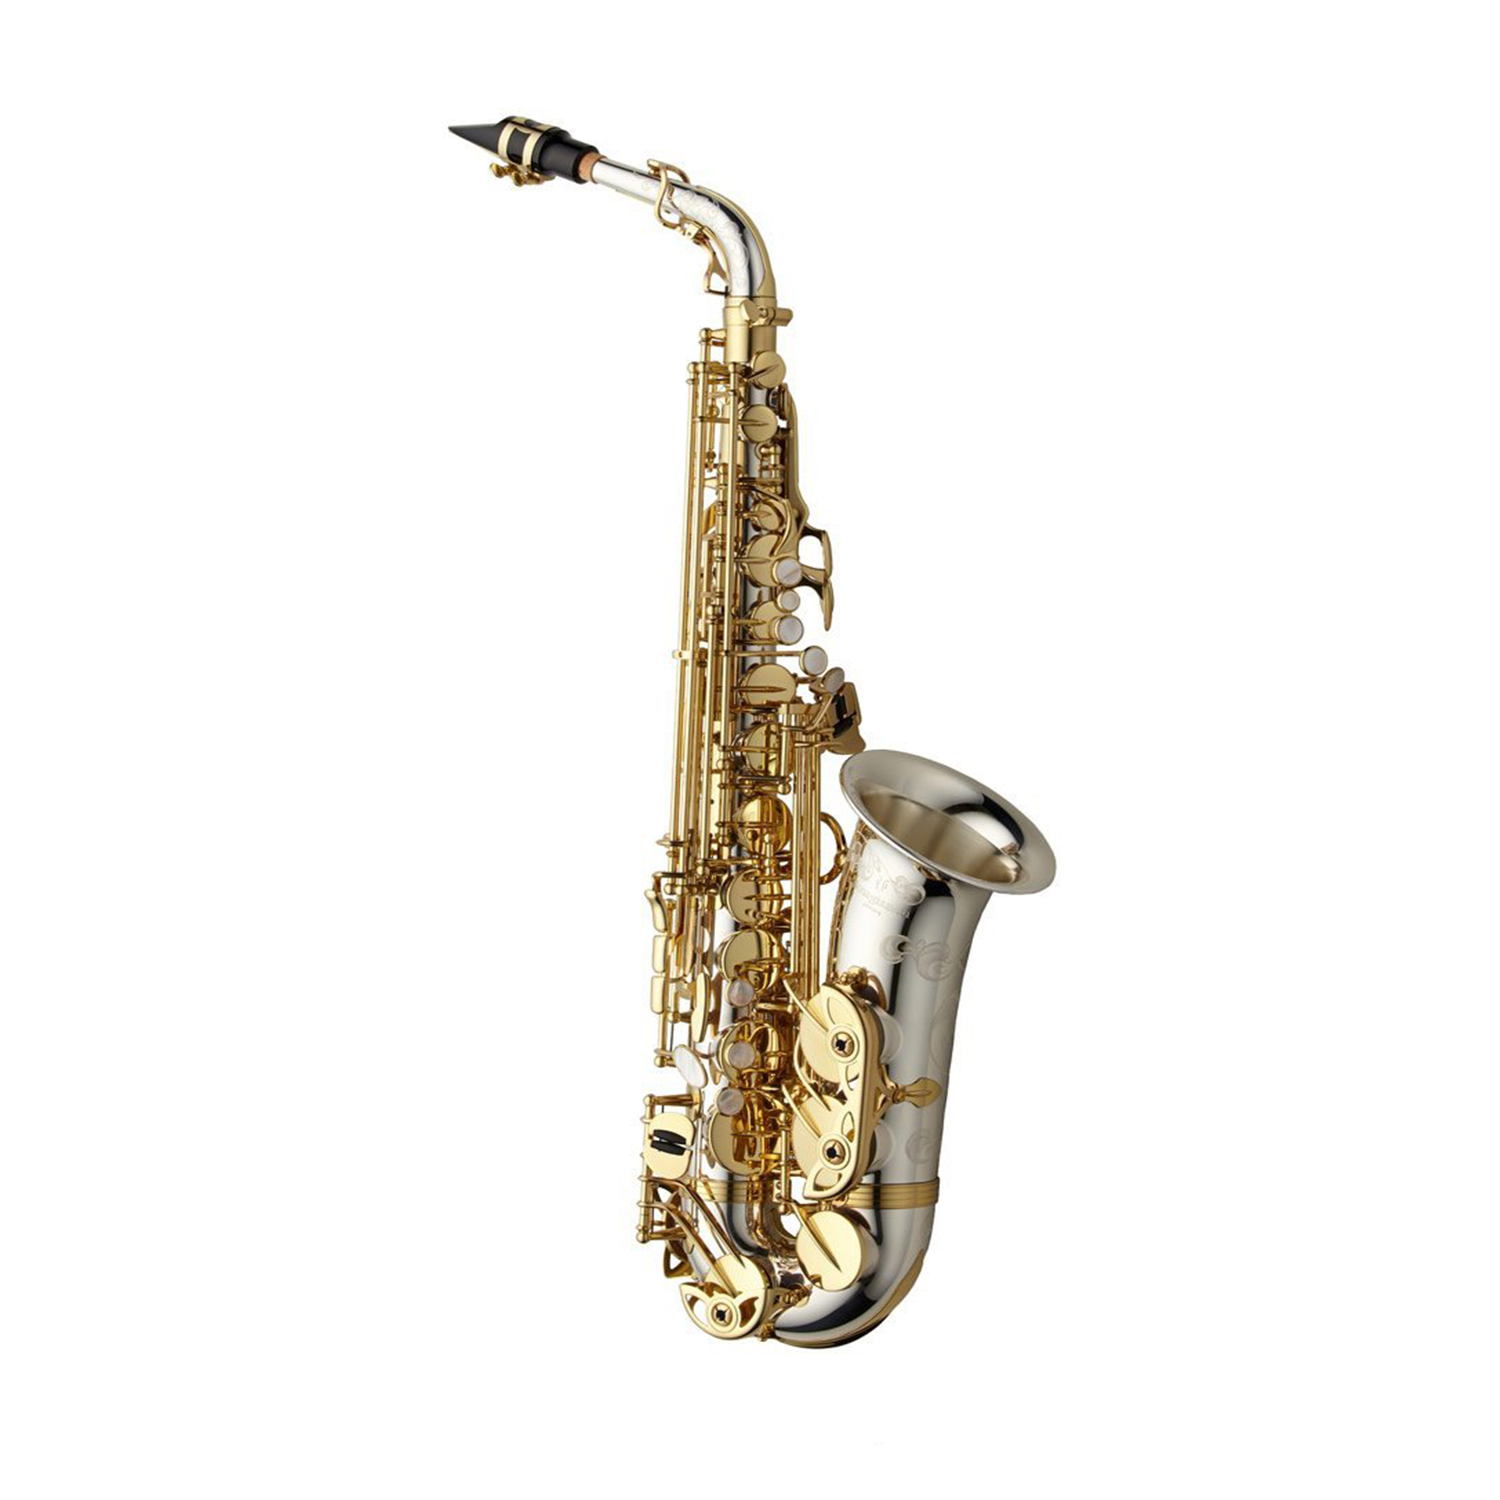 Yanagisawa WO Series Elite Alto Saxophone - Sterling Silver Body, Bell and Neck